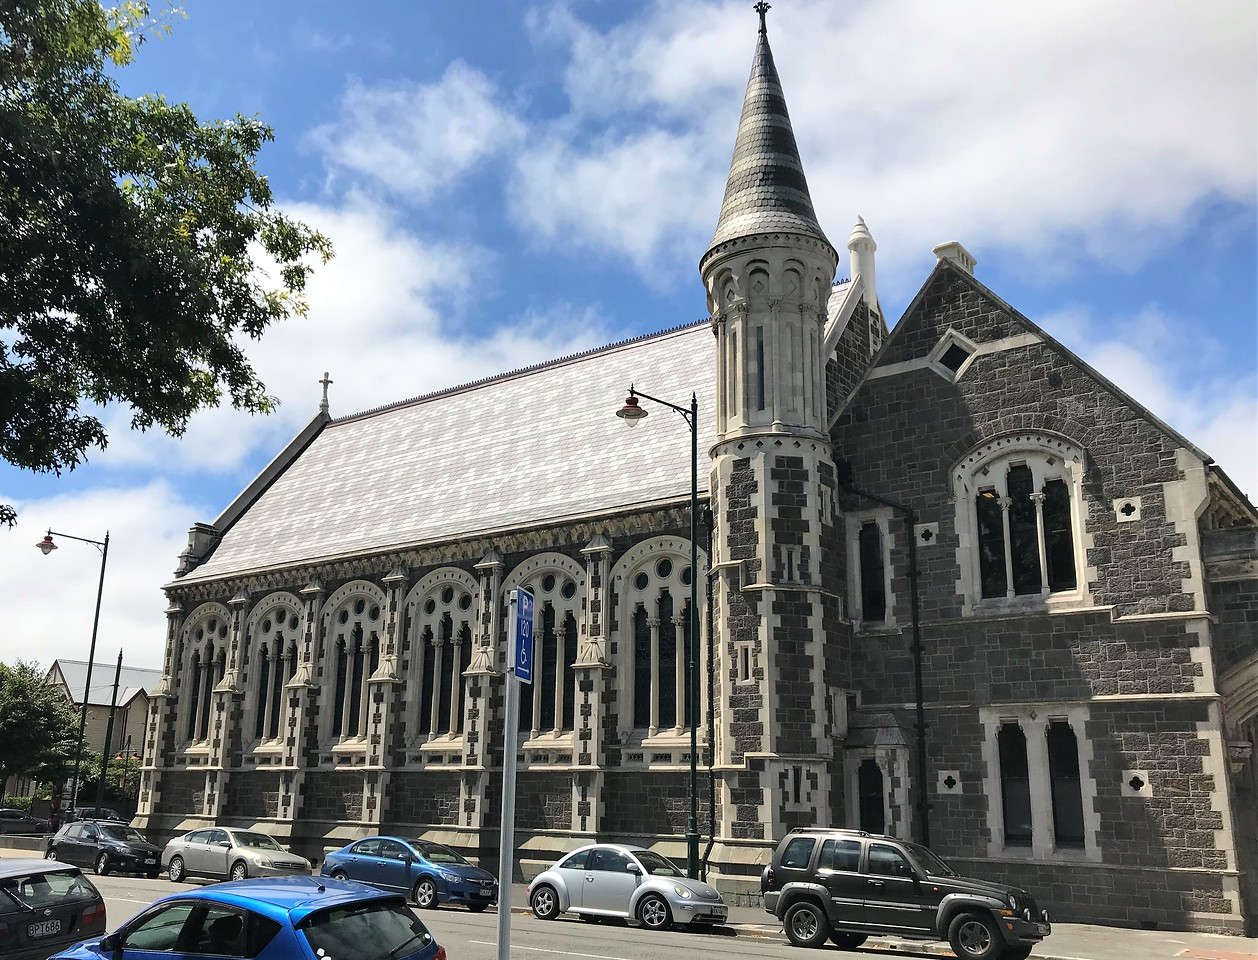 Buildings of the Arts Center of Christchurch.  It is a collection of Gothic Revival buildings that date from 1877 and were formerly used by Canterbury College (now the University of Canterbury) and two of the city's secondary schools.  They were heavily damaged in the earthquake and are undergoing a $300M restoration.